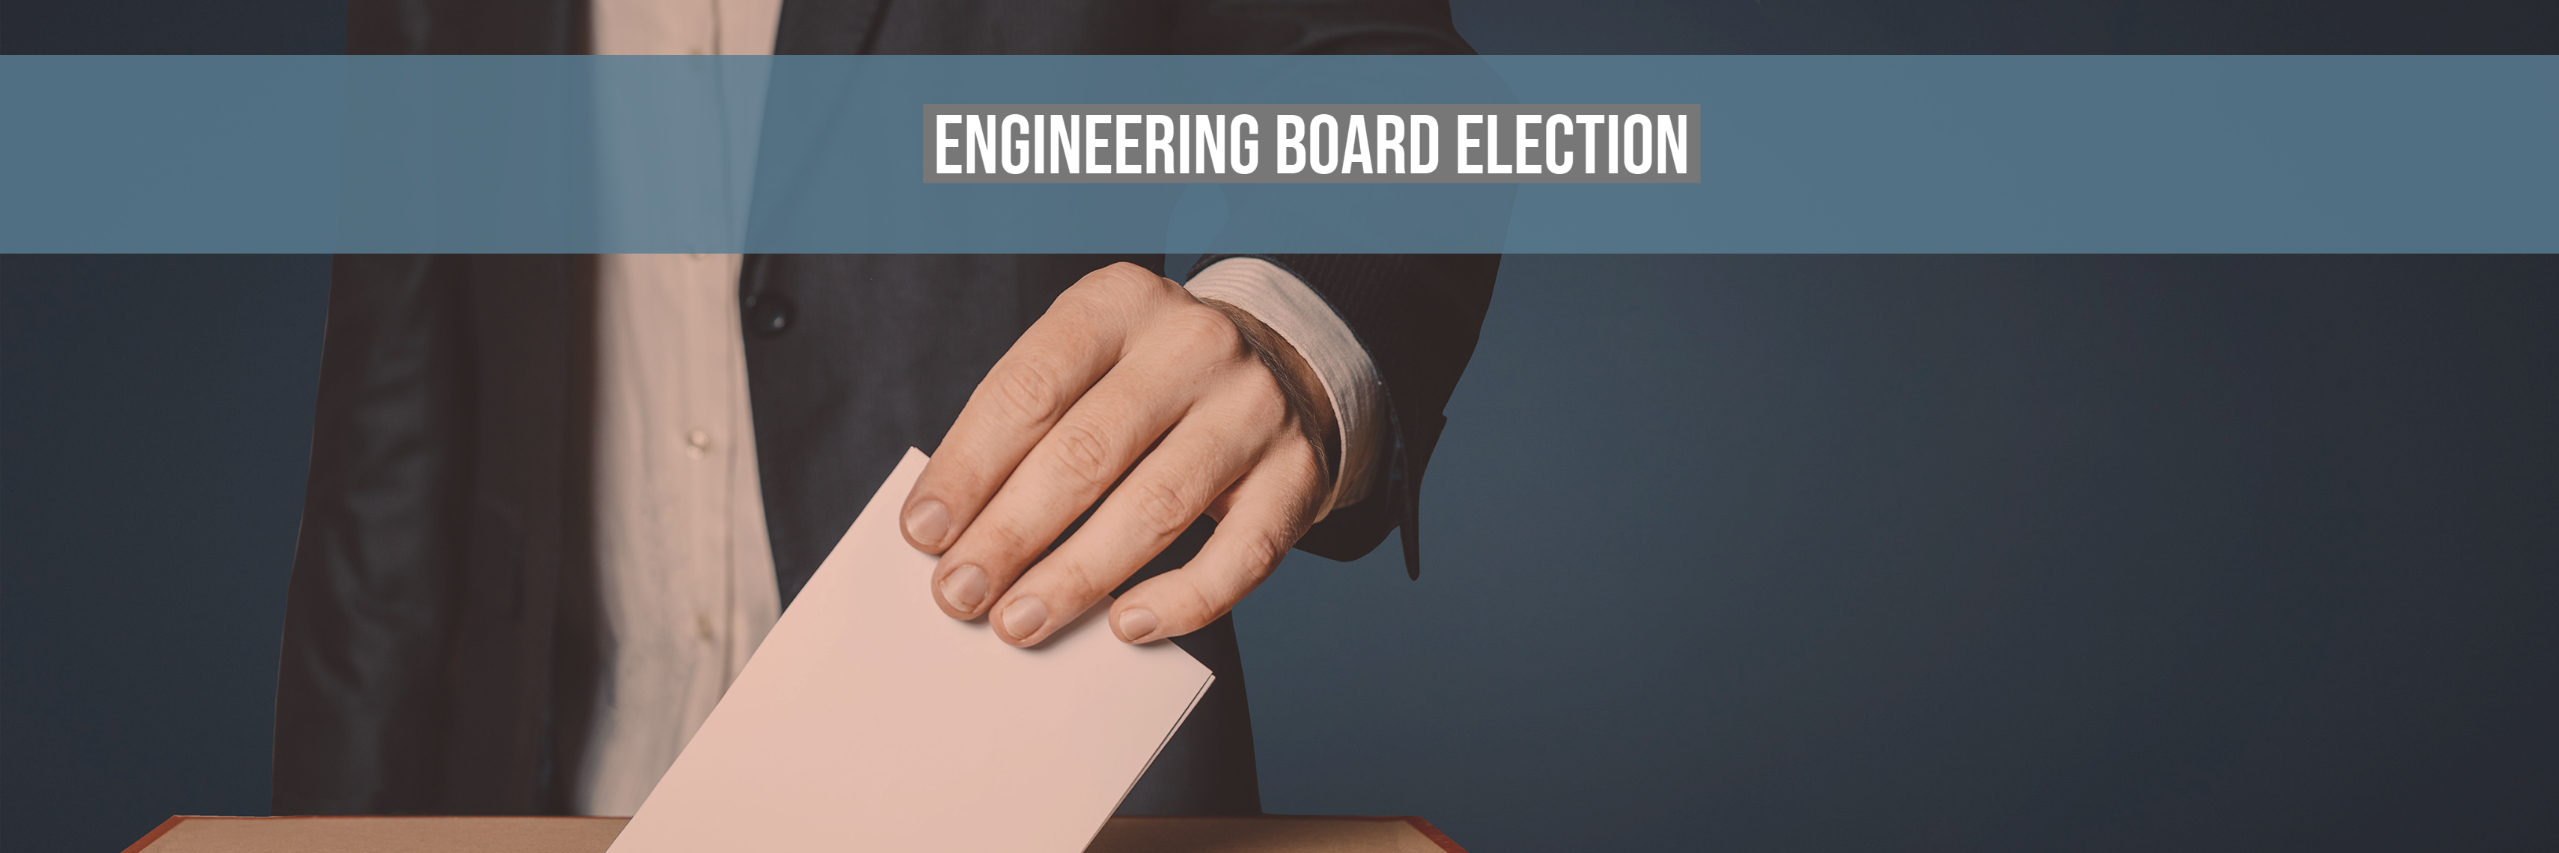 Engineering Board Election Banner.jpg